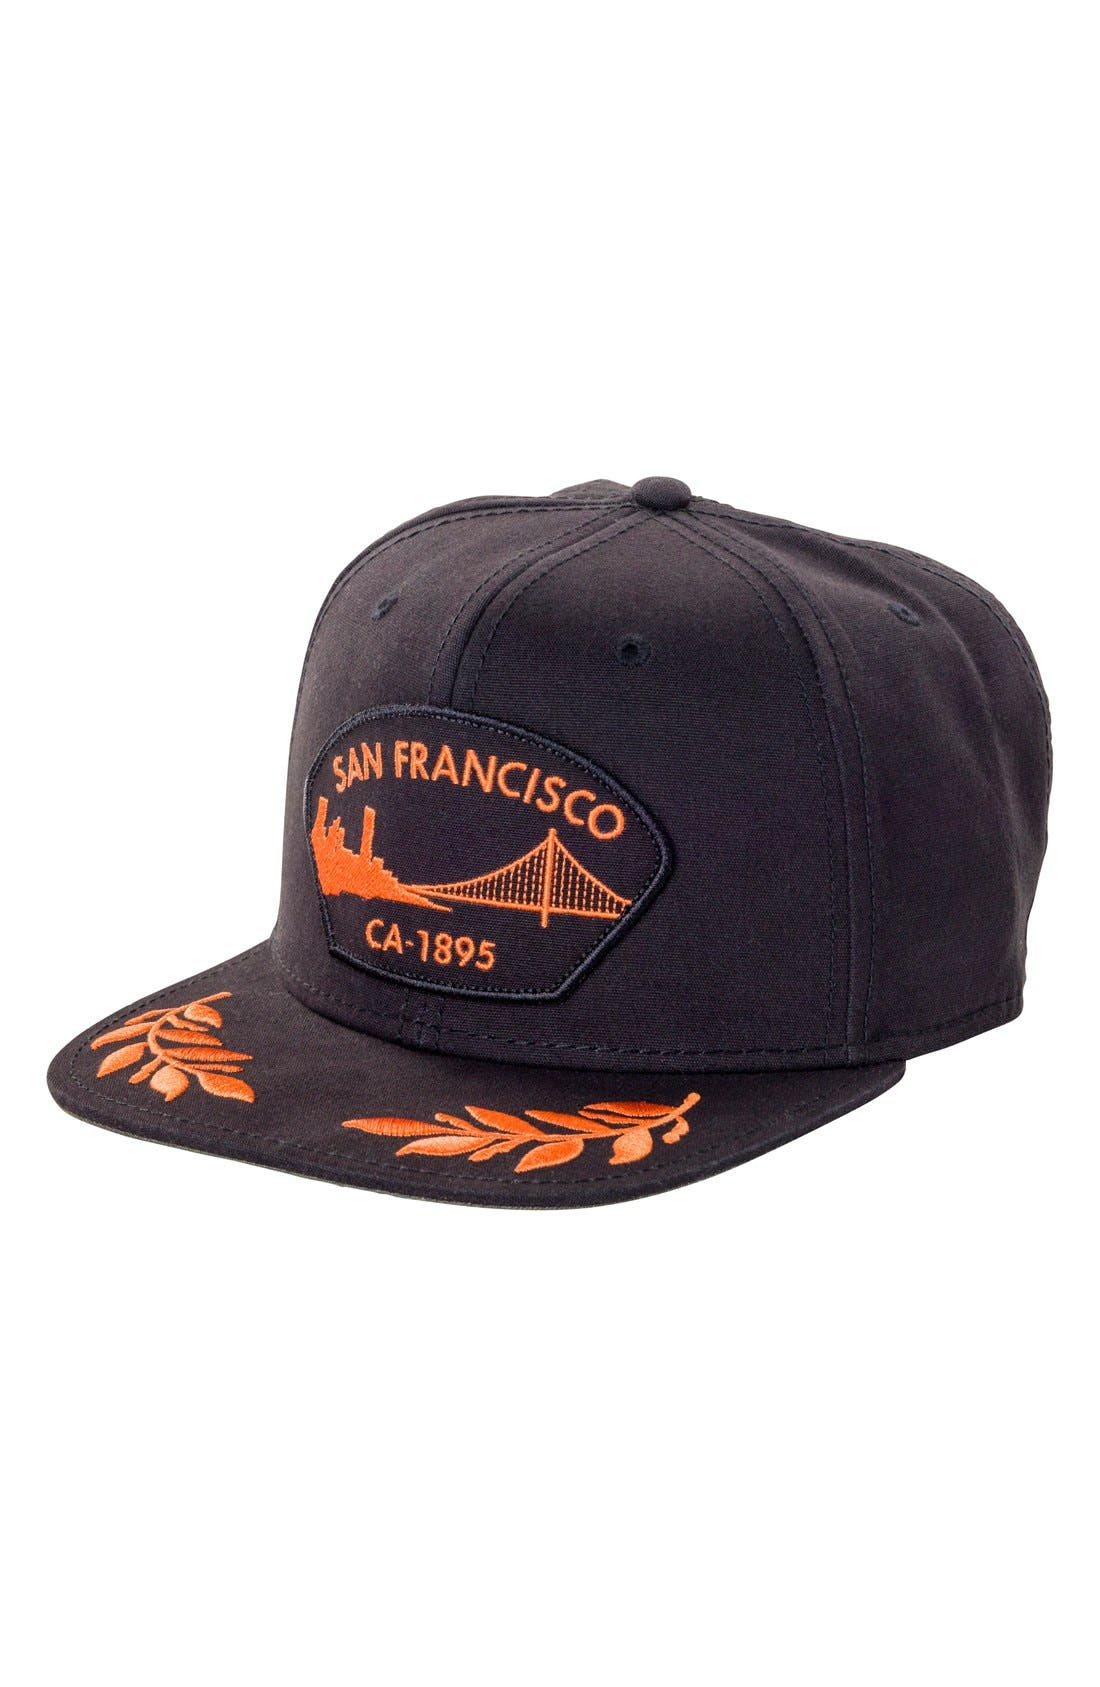 GOORIN BROTHERS 'San Francisco' Baseball Cap